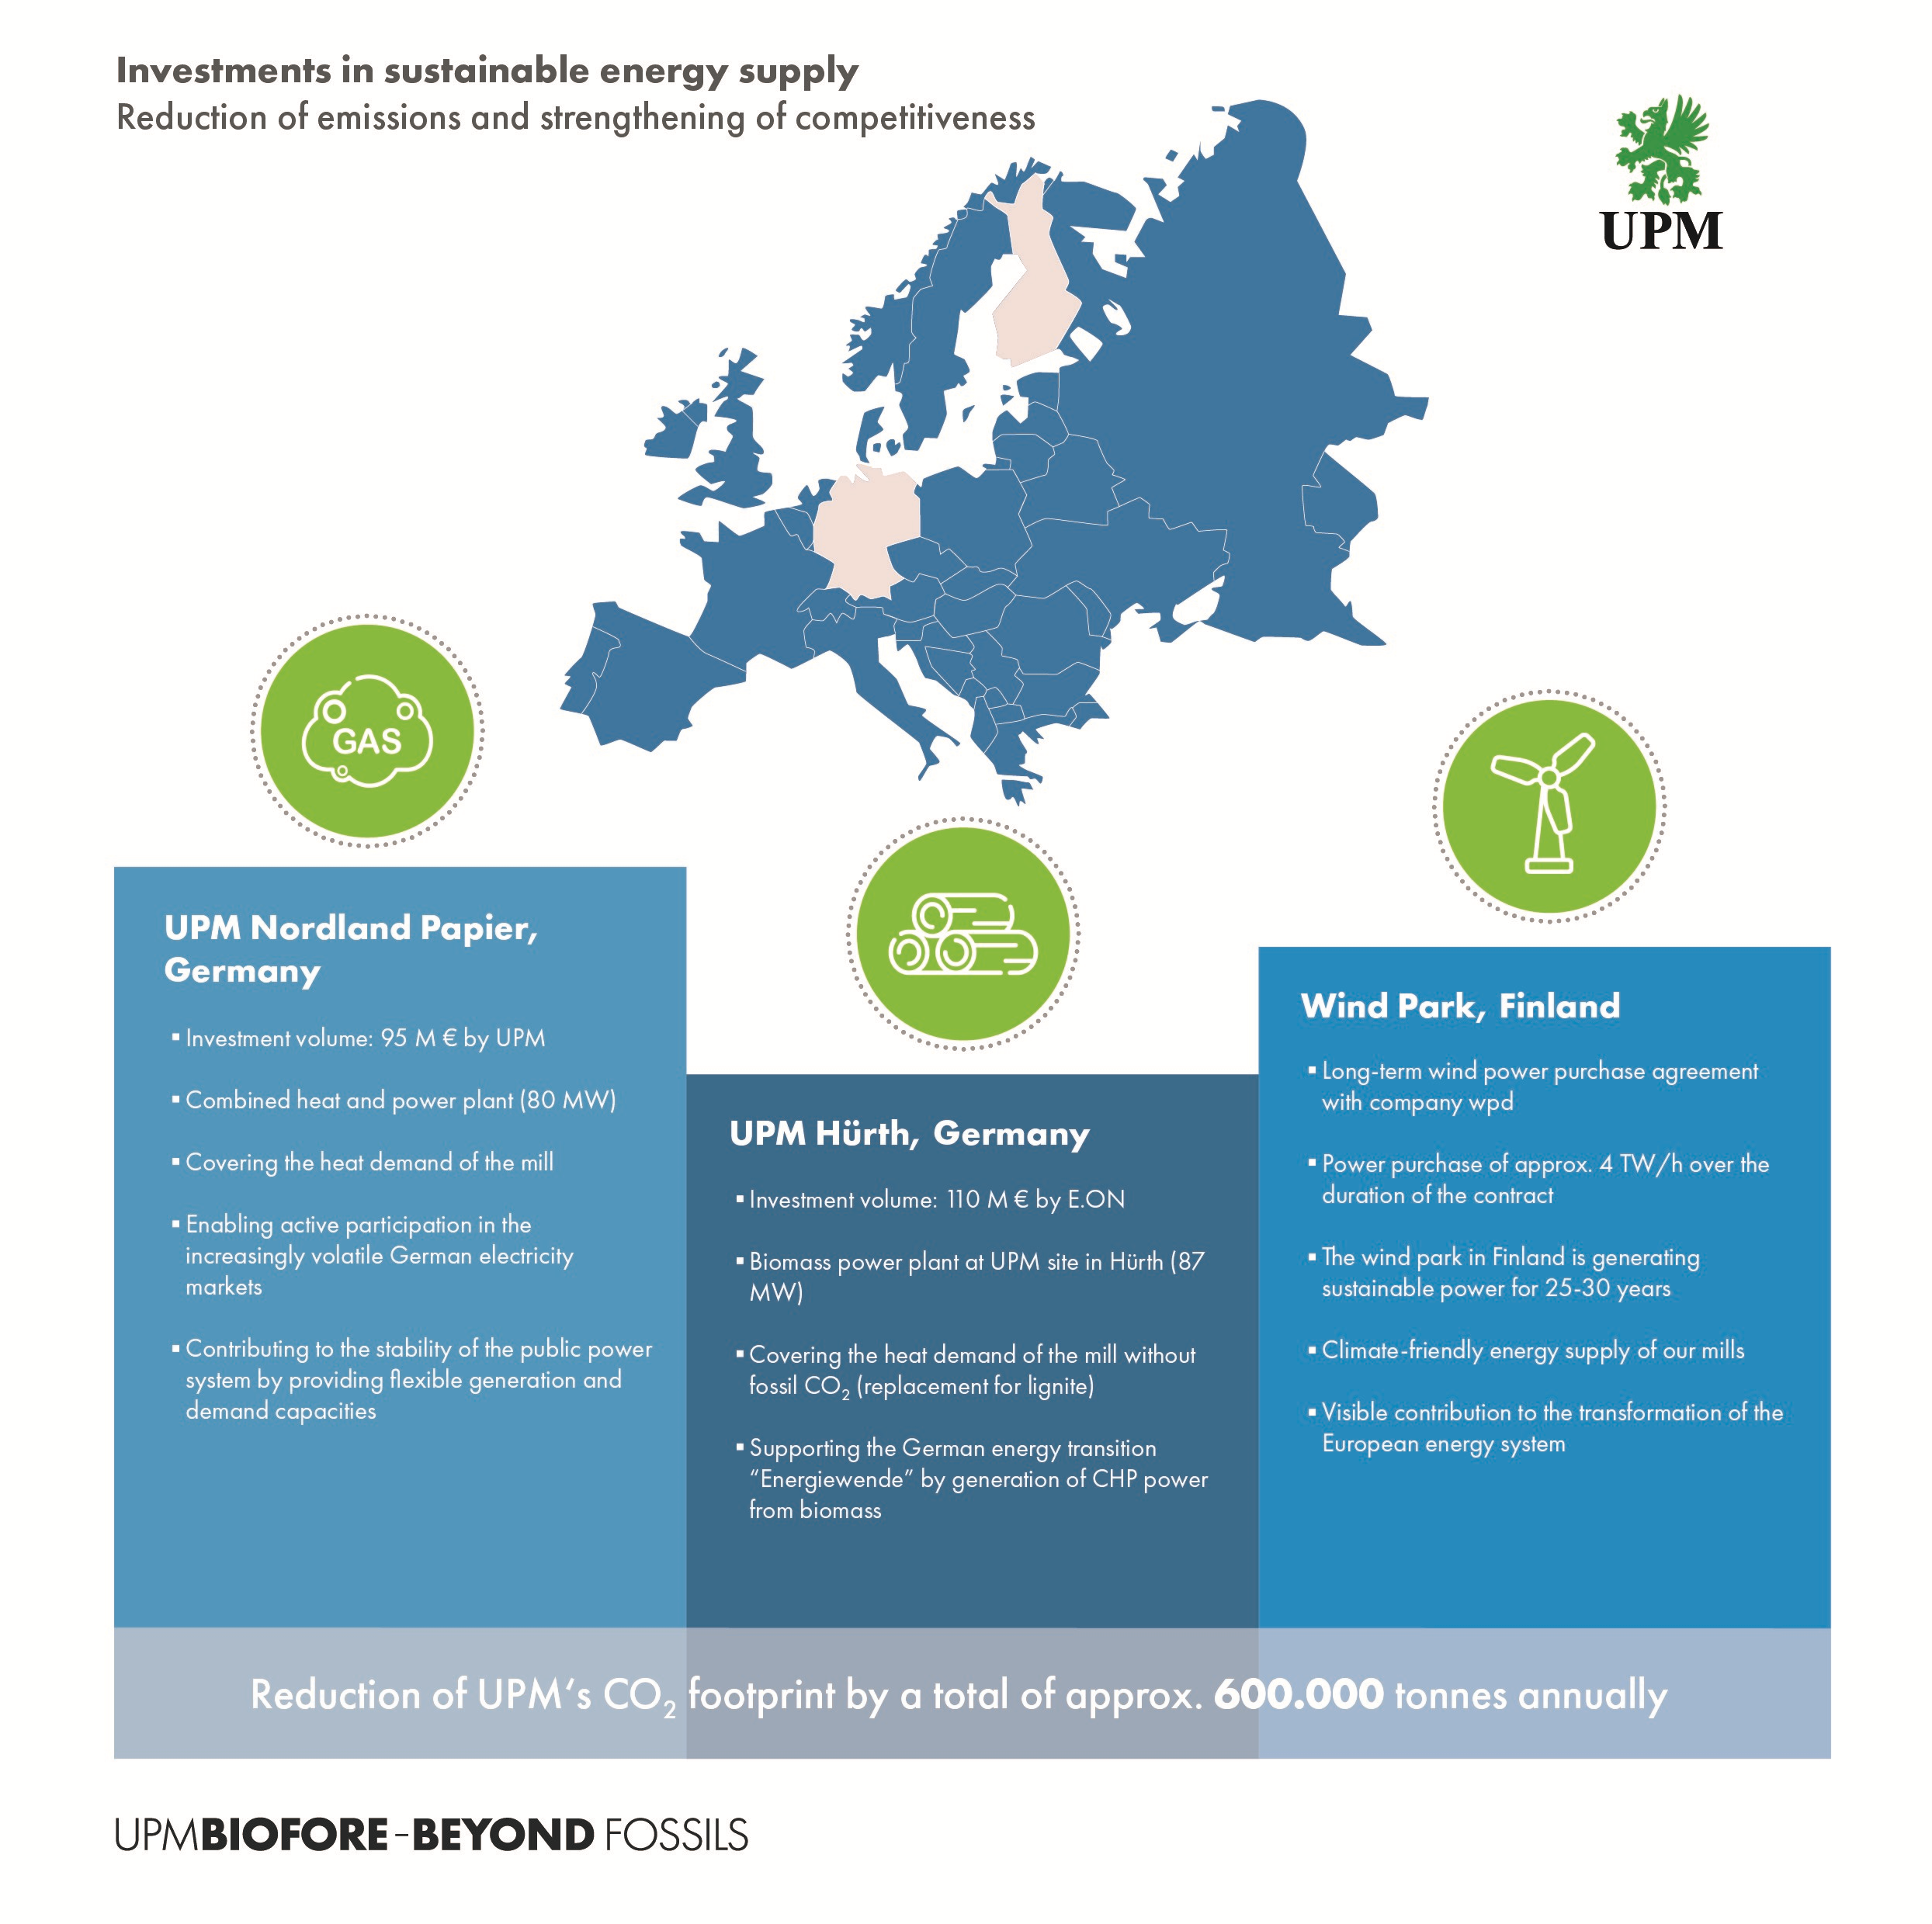 UPM investments in sustainable energy supply